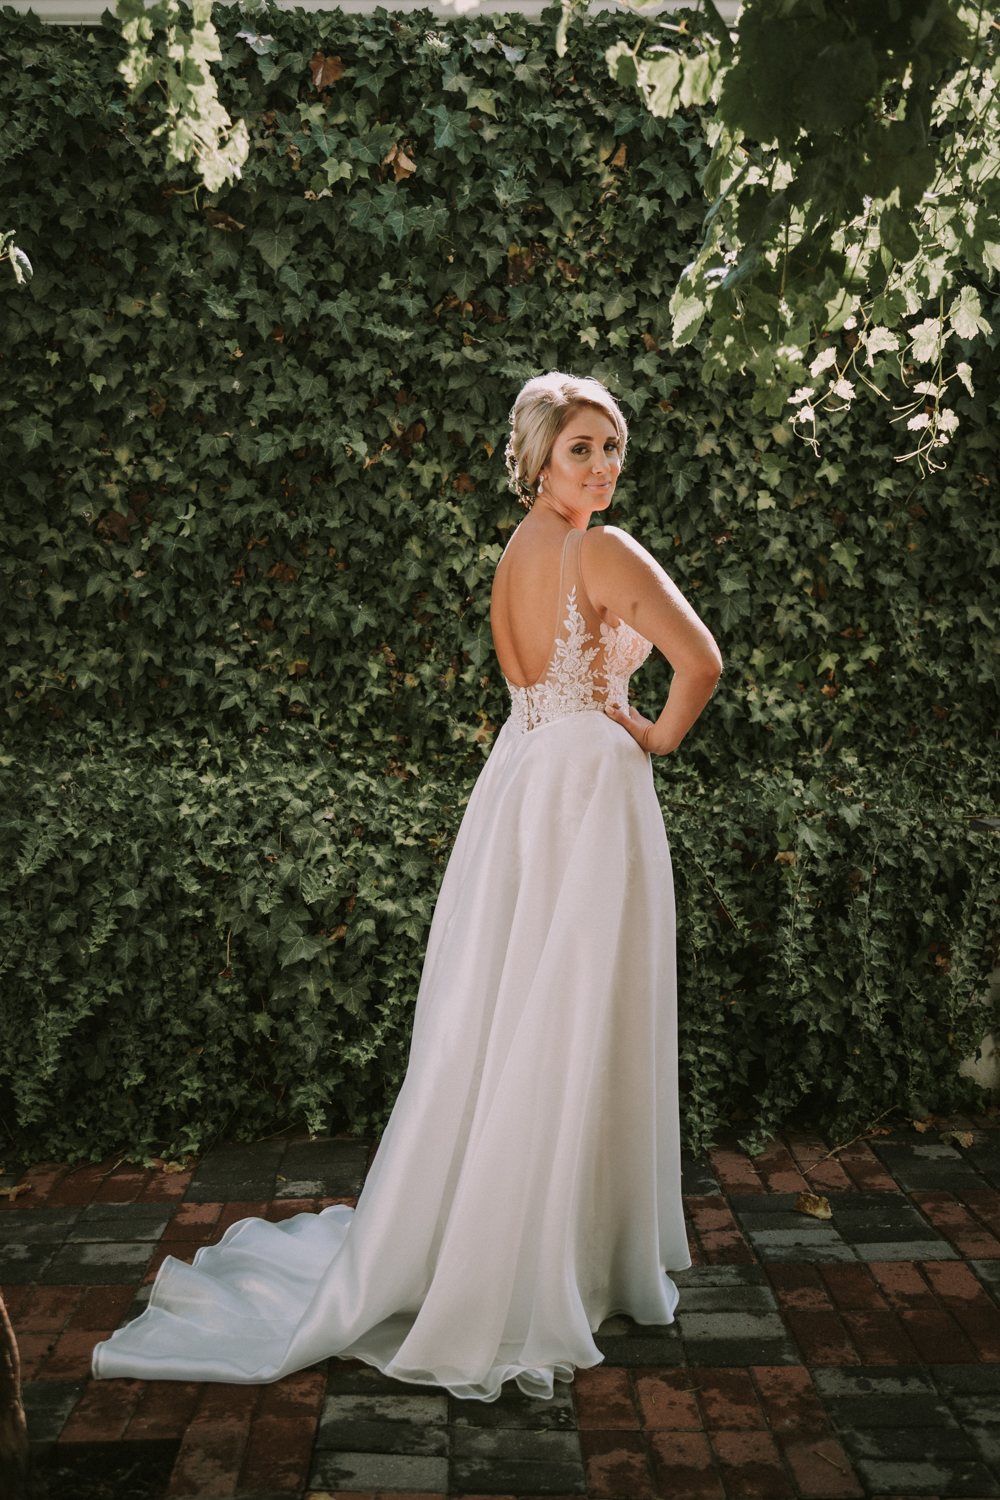 Elegant Country Wedding Cape Town - Bianca Asher Photography-29.jpg